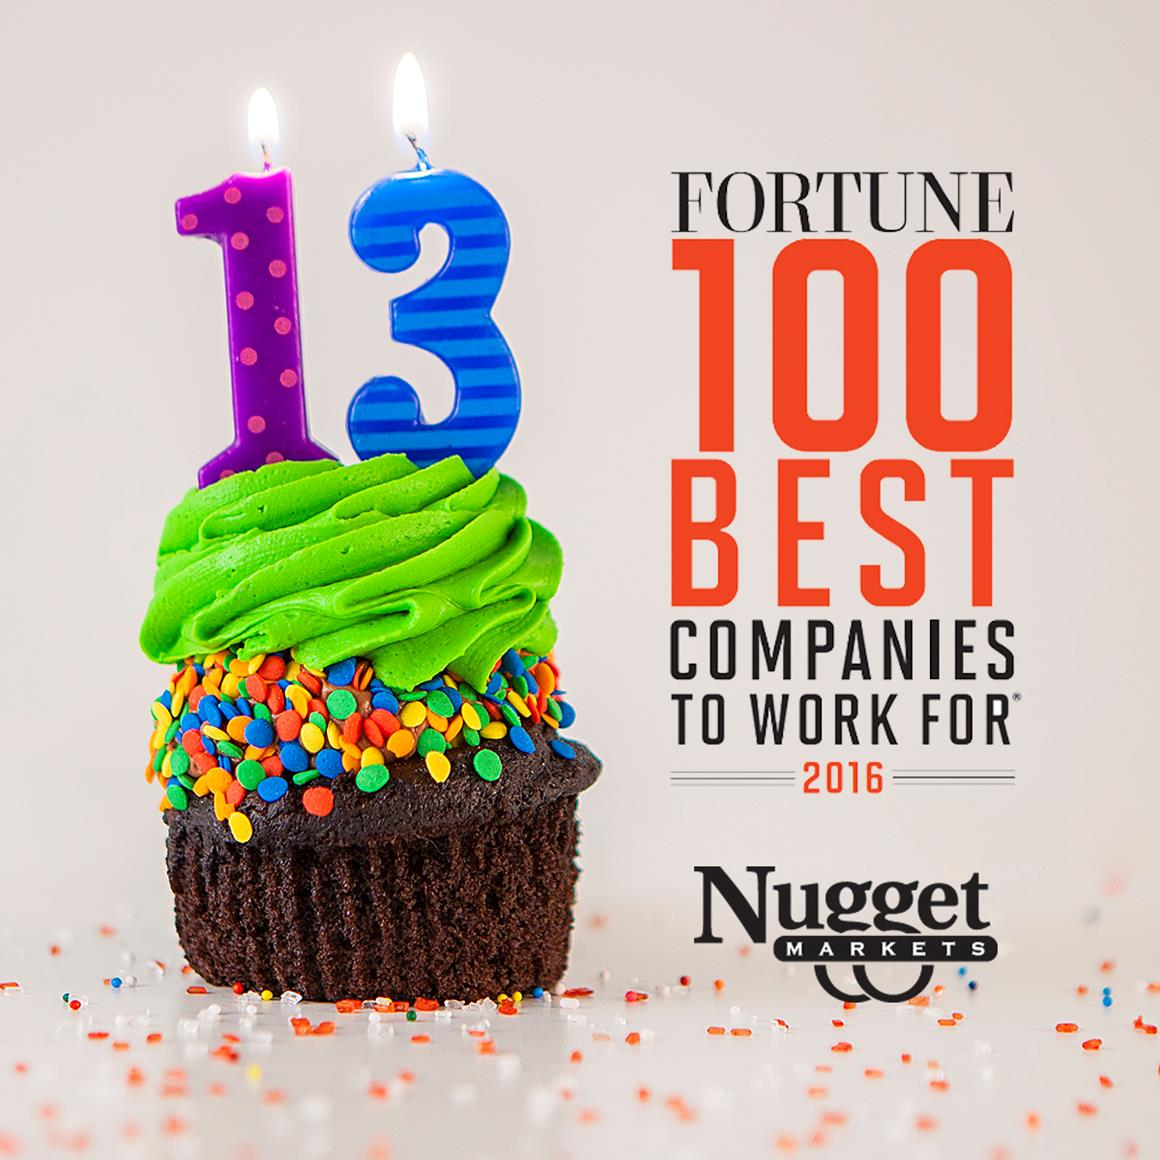 Nugget Markets Fortune 100 Best Companies to work for 2016